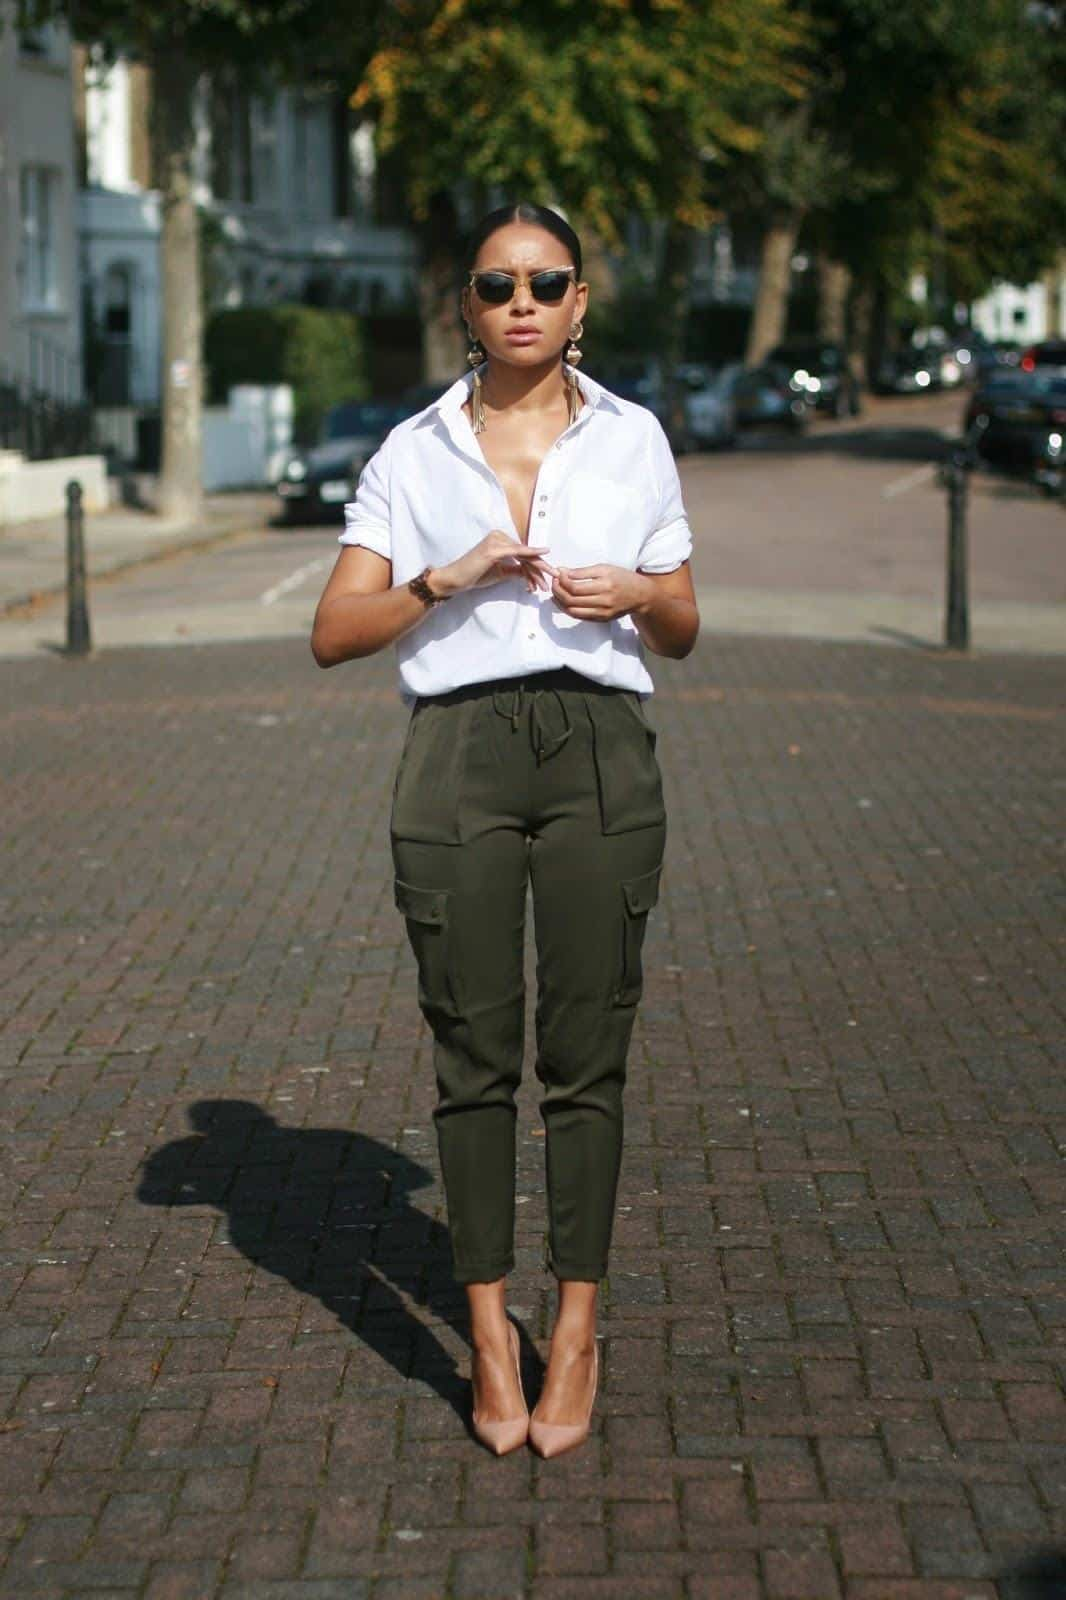 Bluemelon Photo Hosting: upload, share or sell photos online Pantalon fashion style militaire